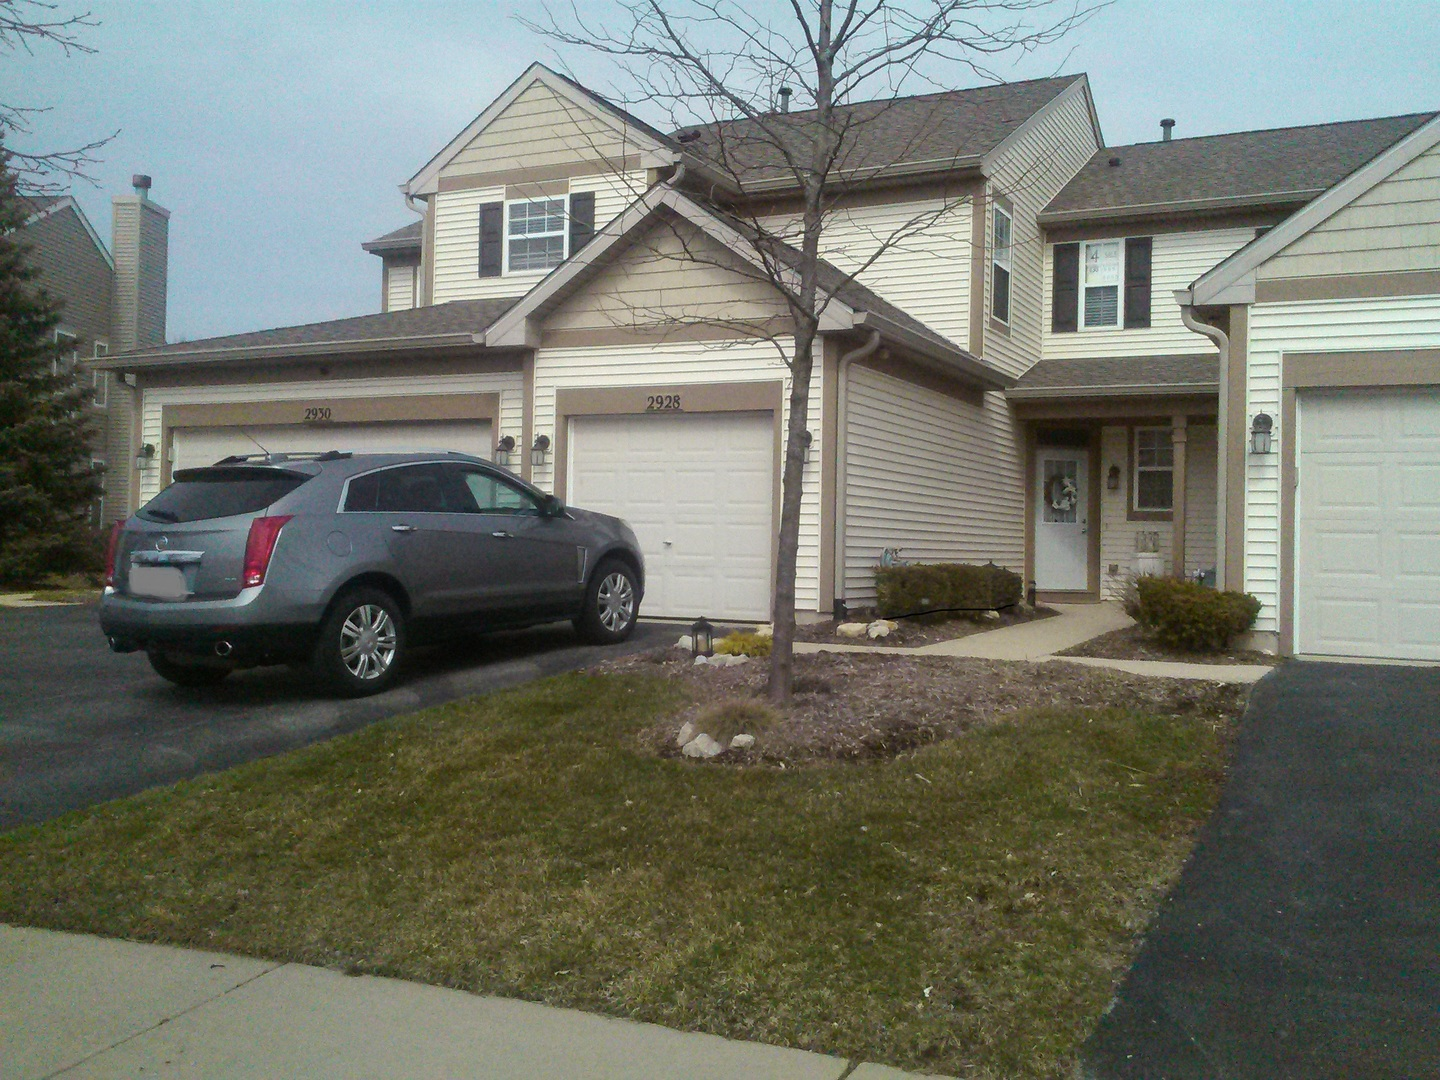 Office4sale 2928 Gypsum Circle 2928 Naperville 60564 Crowne Realty Llc